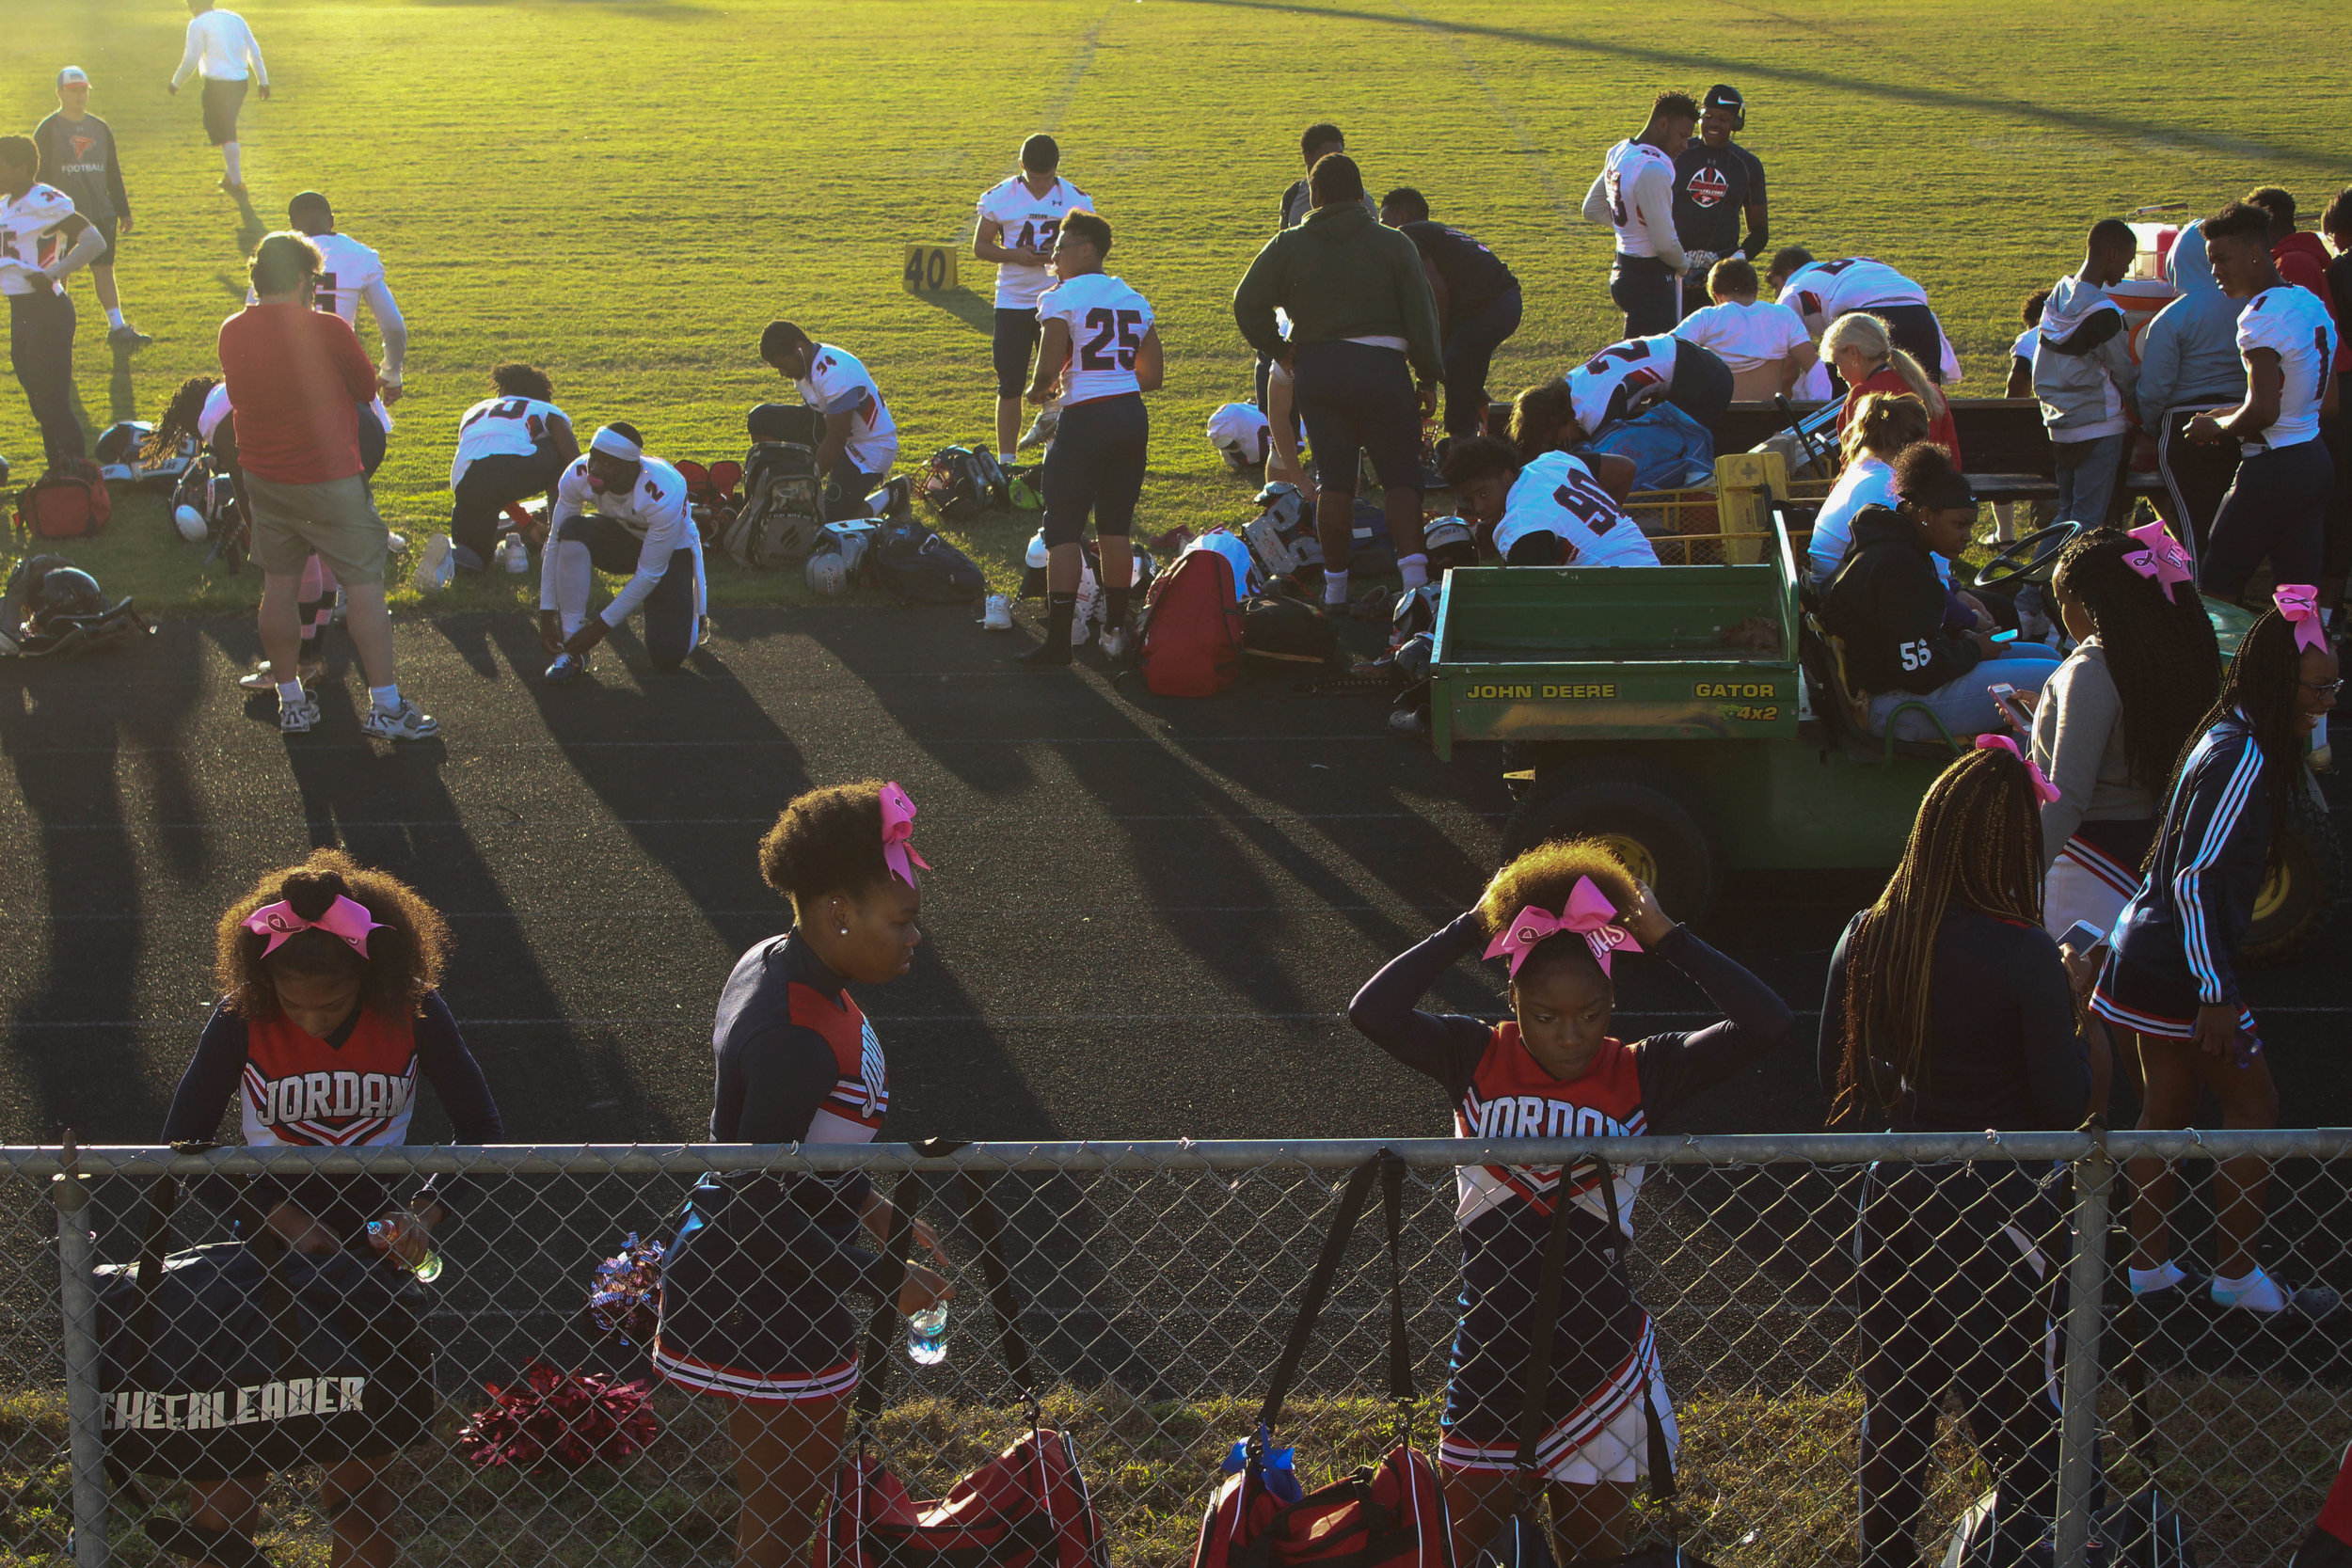 Jordan's cheerleading and football teams prepare for their last away game at Riverside High School. They arrive one hour early so that the boys have plenty of time to dress for the game and the girls can practice their cheers.